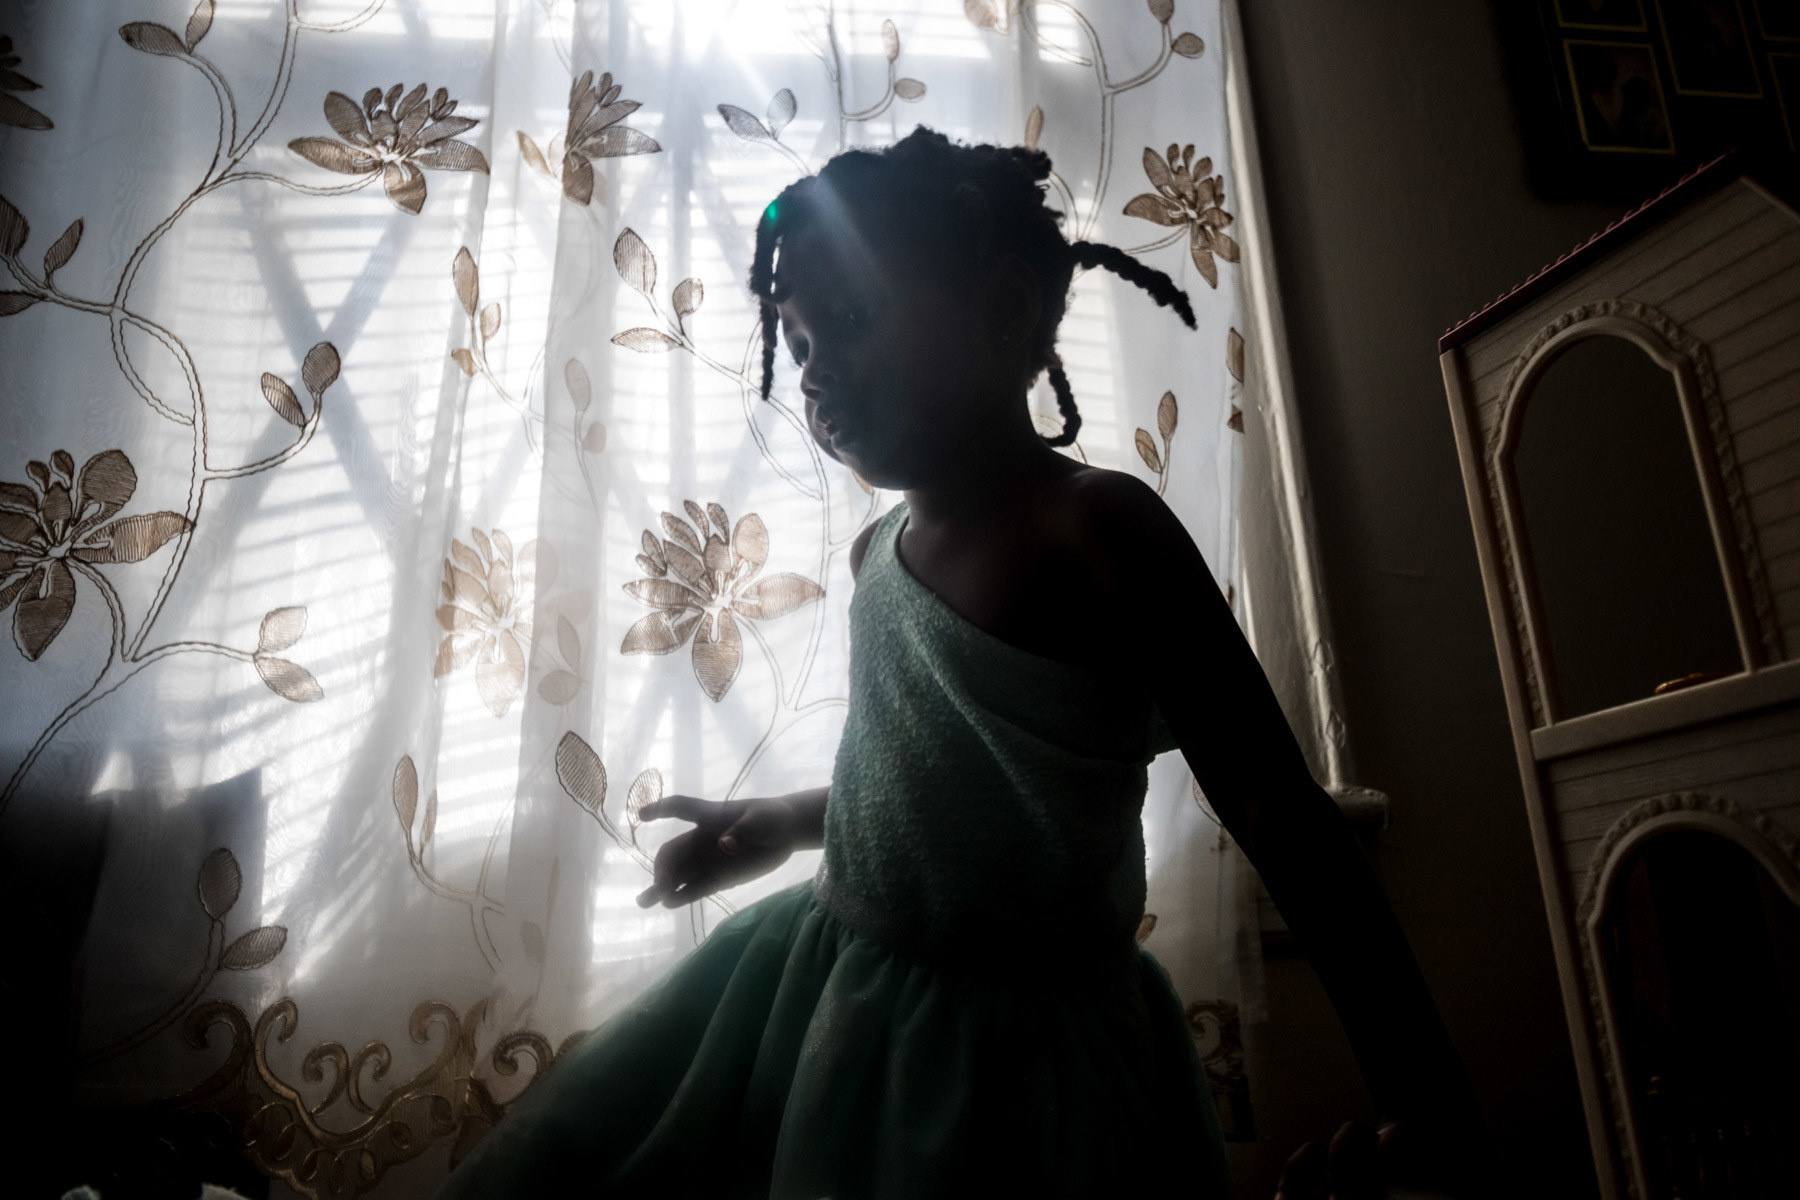 A toddler in a dark room stands by a window curtain with flowers embroidered on it